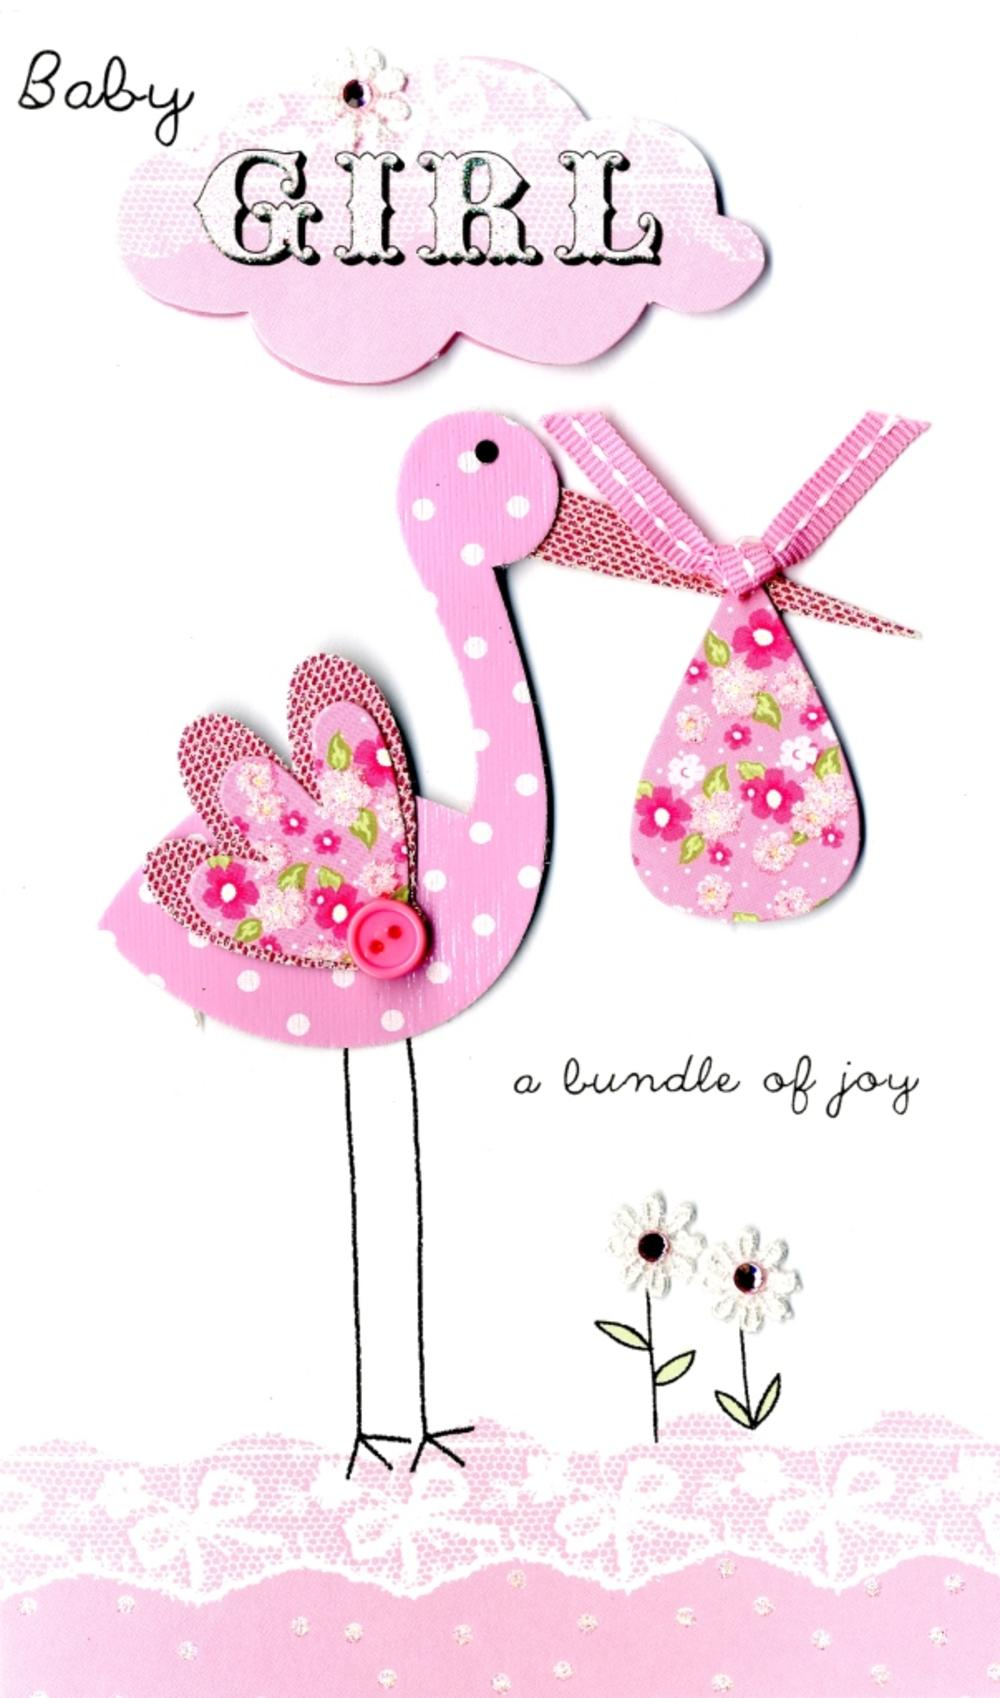 New Baby Girl Stork Luxury Champagne Greeting Card